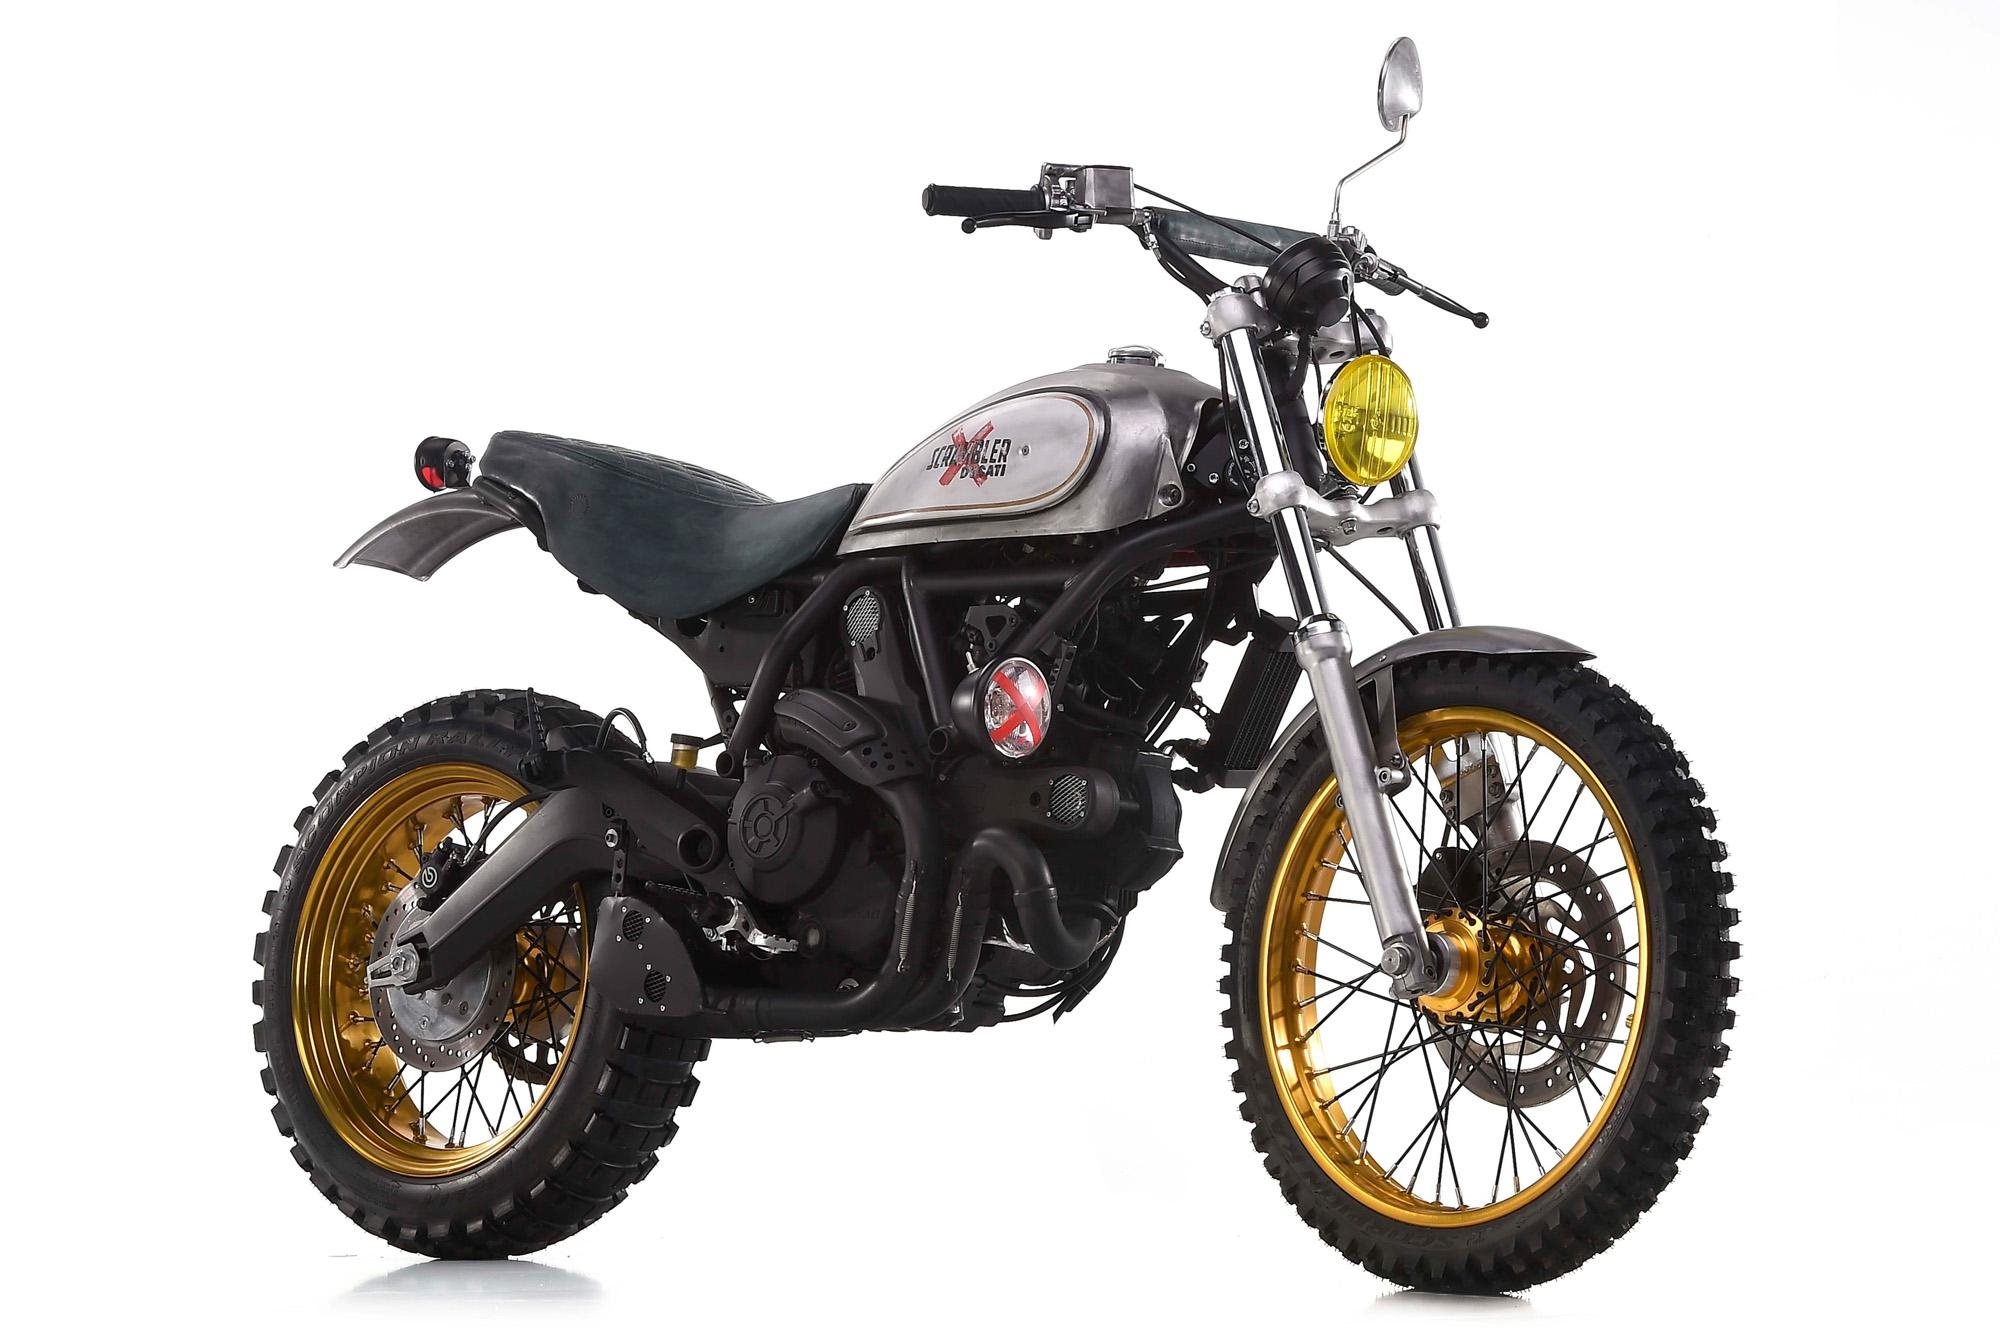 ducati scrambler umbauten 2015 modellnews. Black Bedroom Furniture Sets. Home Design Ideas